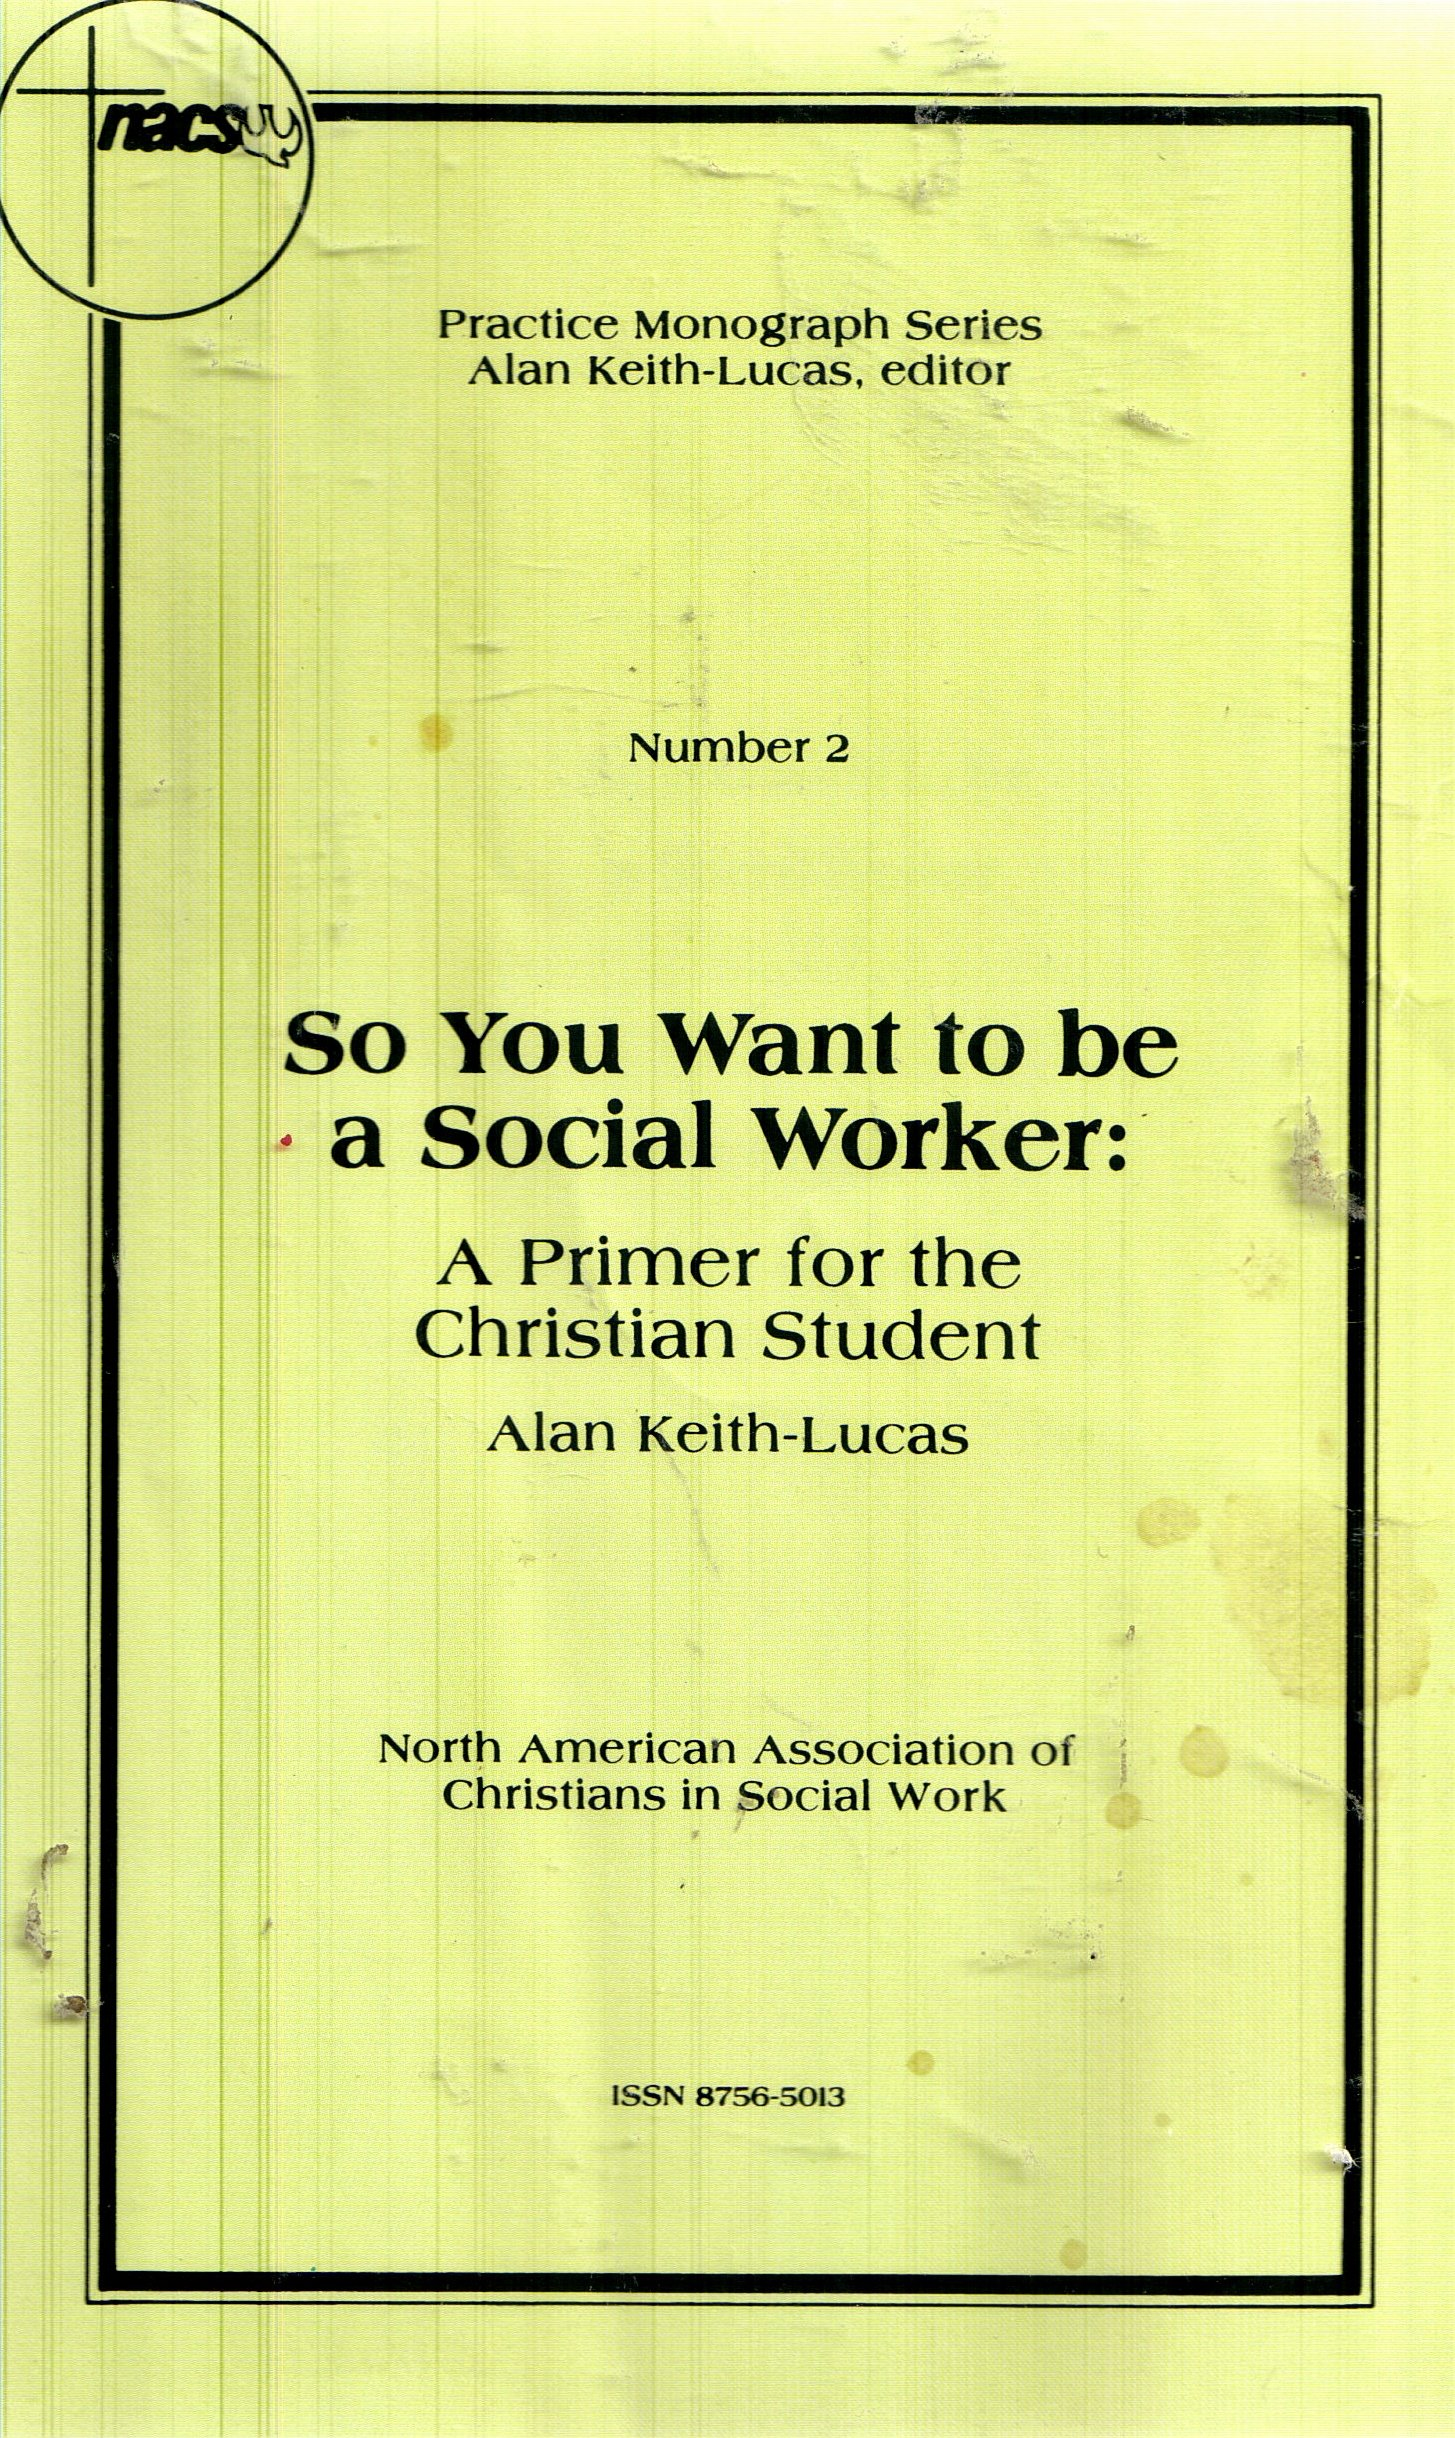 i want to be a social worker because